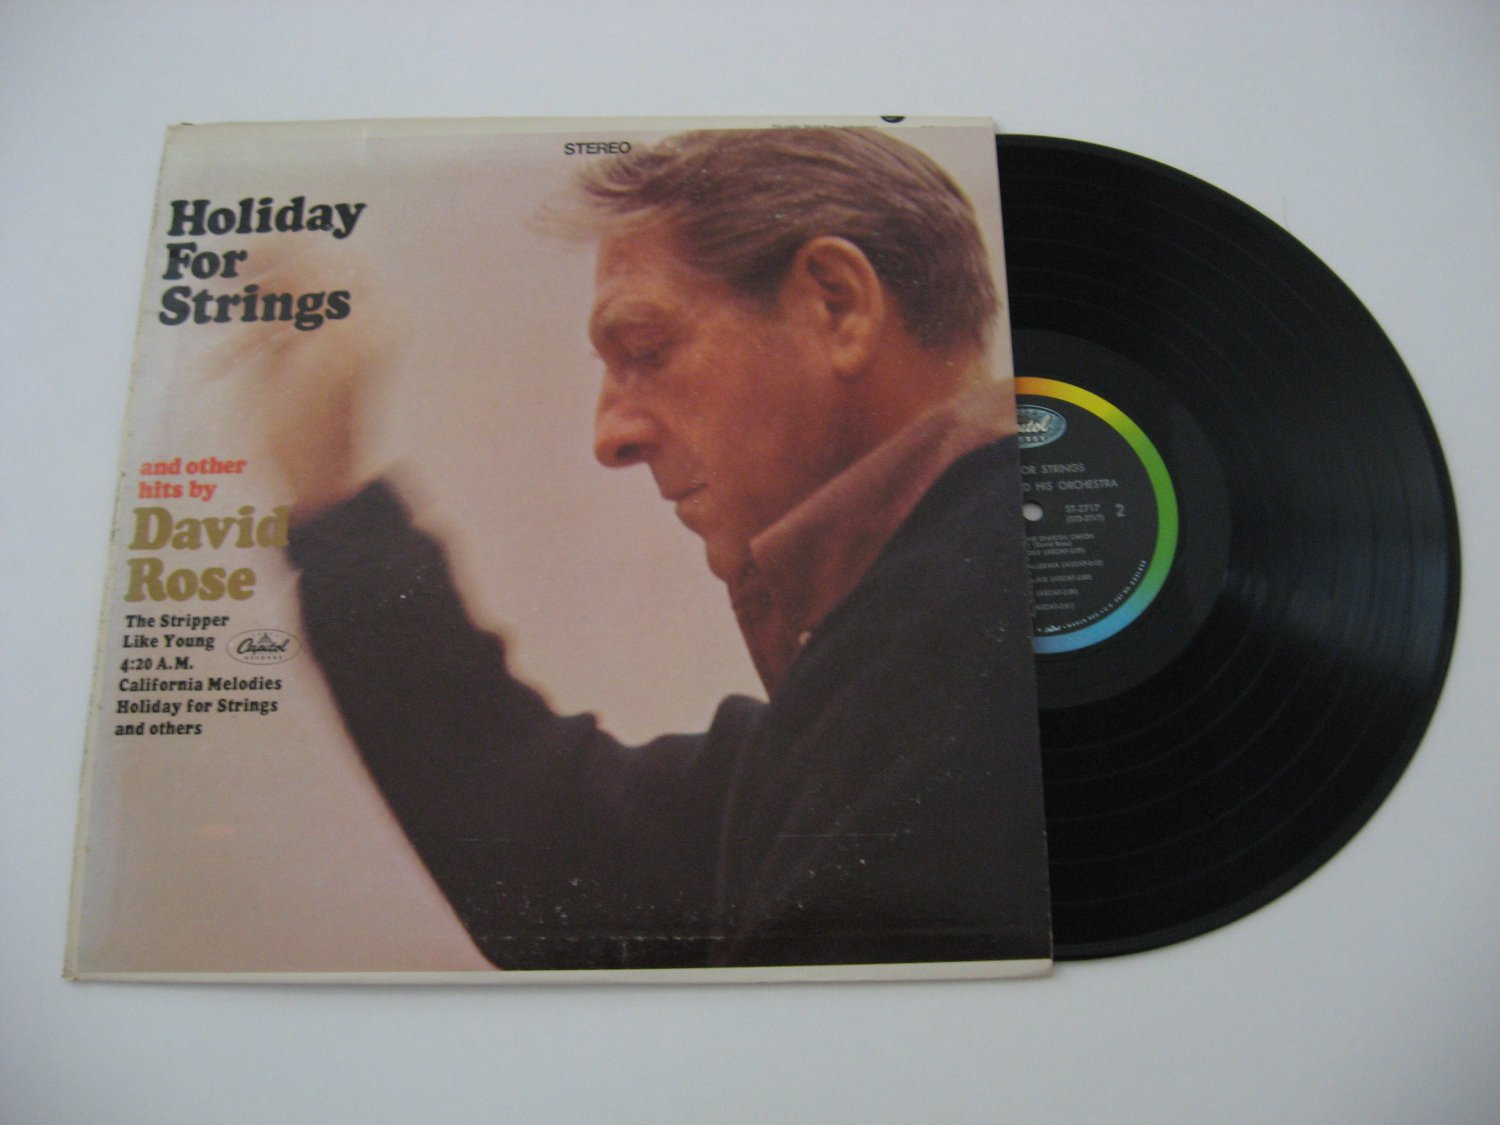 David Rose - Holiday For Strings - 1967 (Vinyl Records)